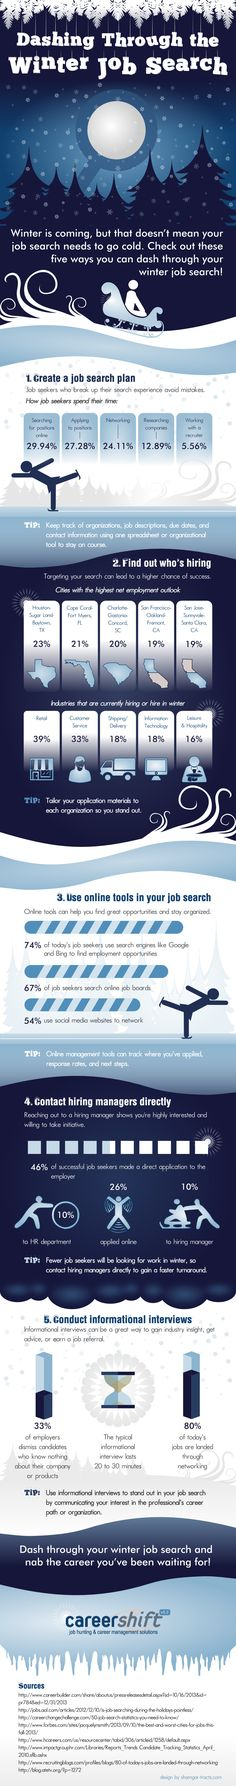 How to Dash Through Your Winter Job Search [INFOGRAPHIC] on http://theundercoverrecruiter.com